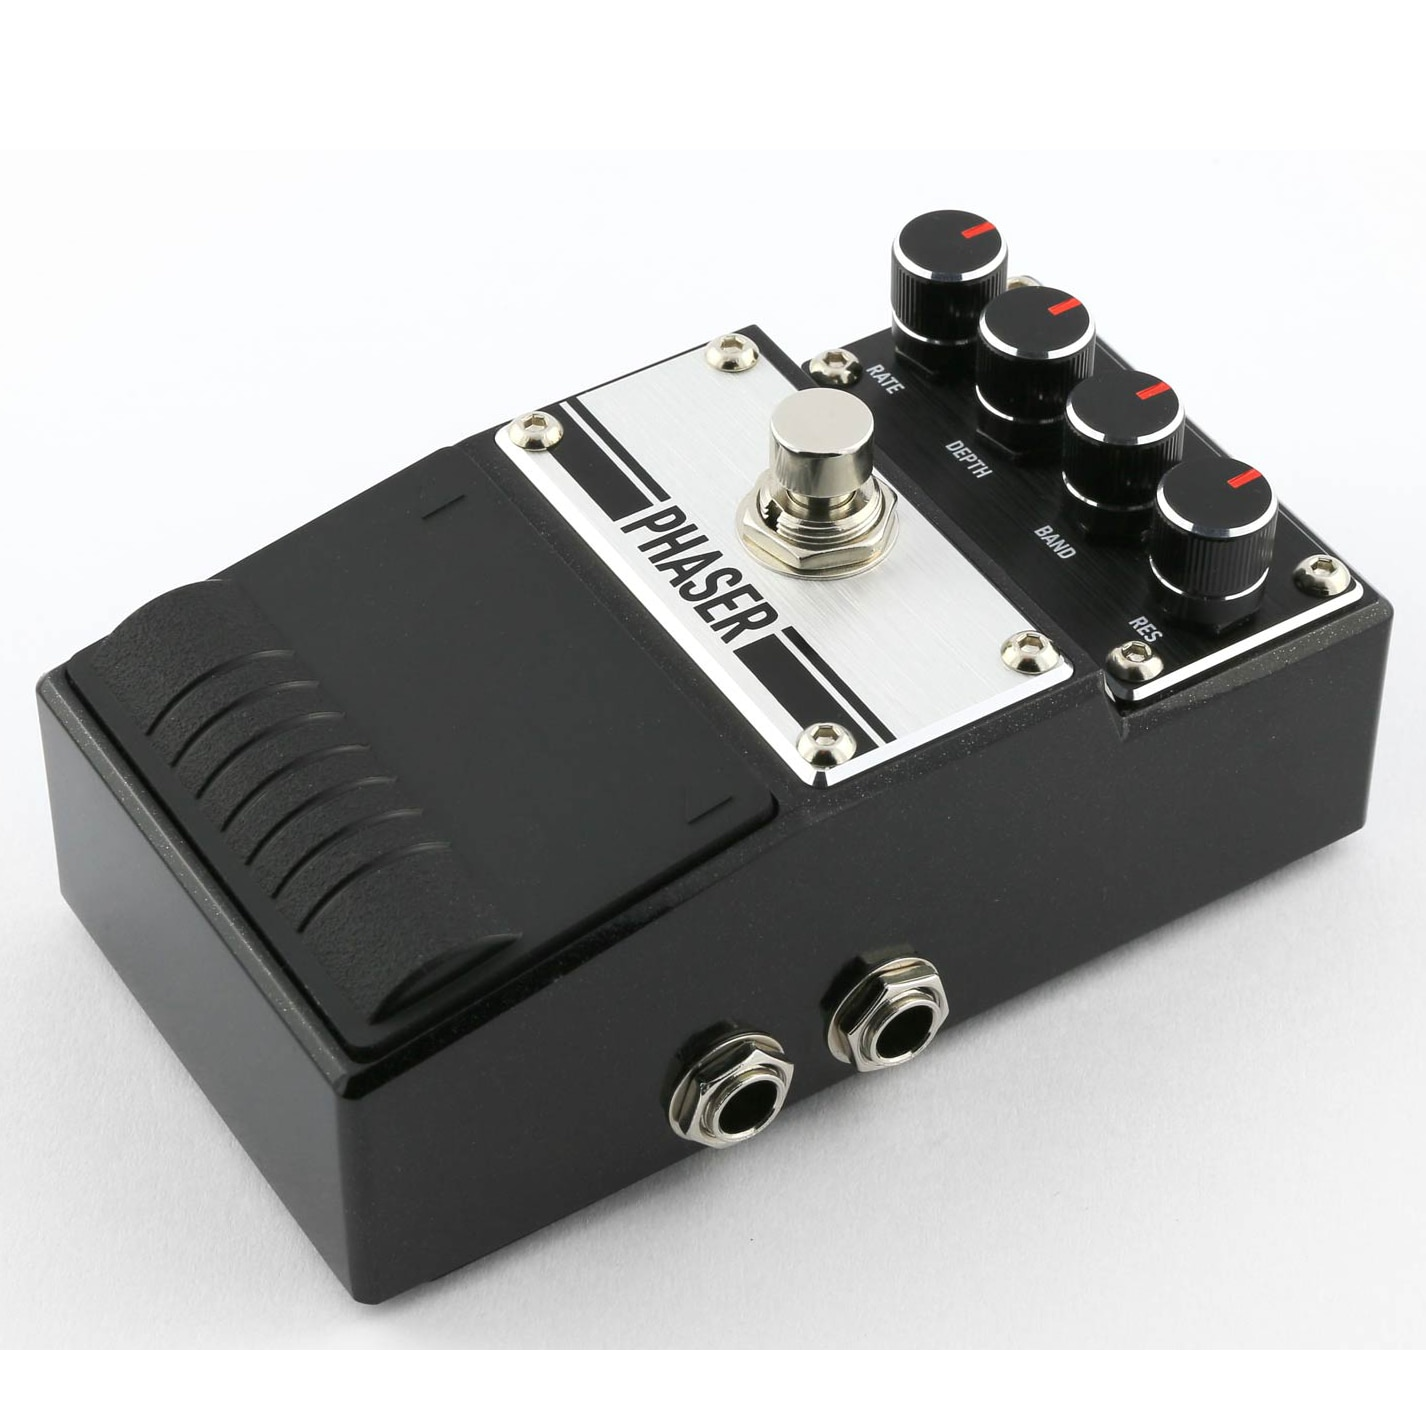 BAC Guitar-Accessories Phaser Audio Effector Pedals with 32 Stages of Shift enlarge